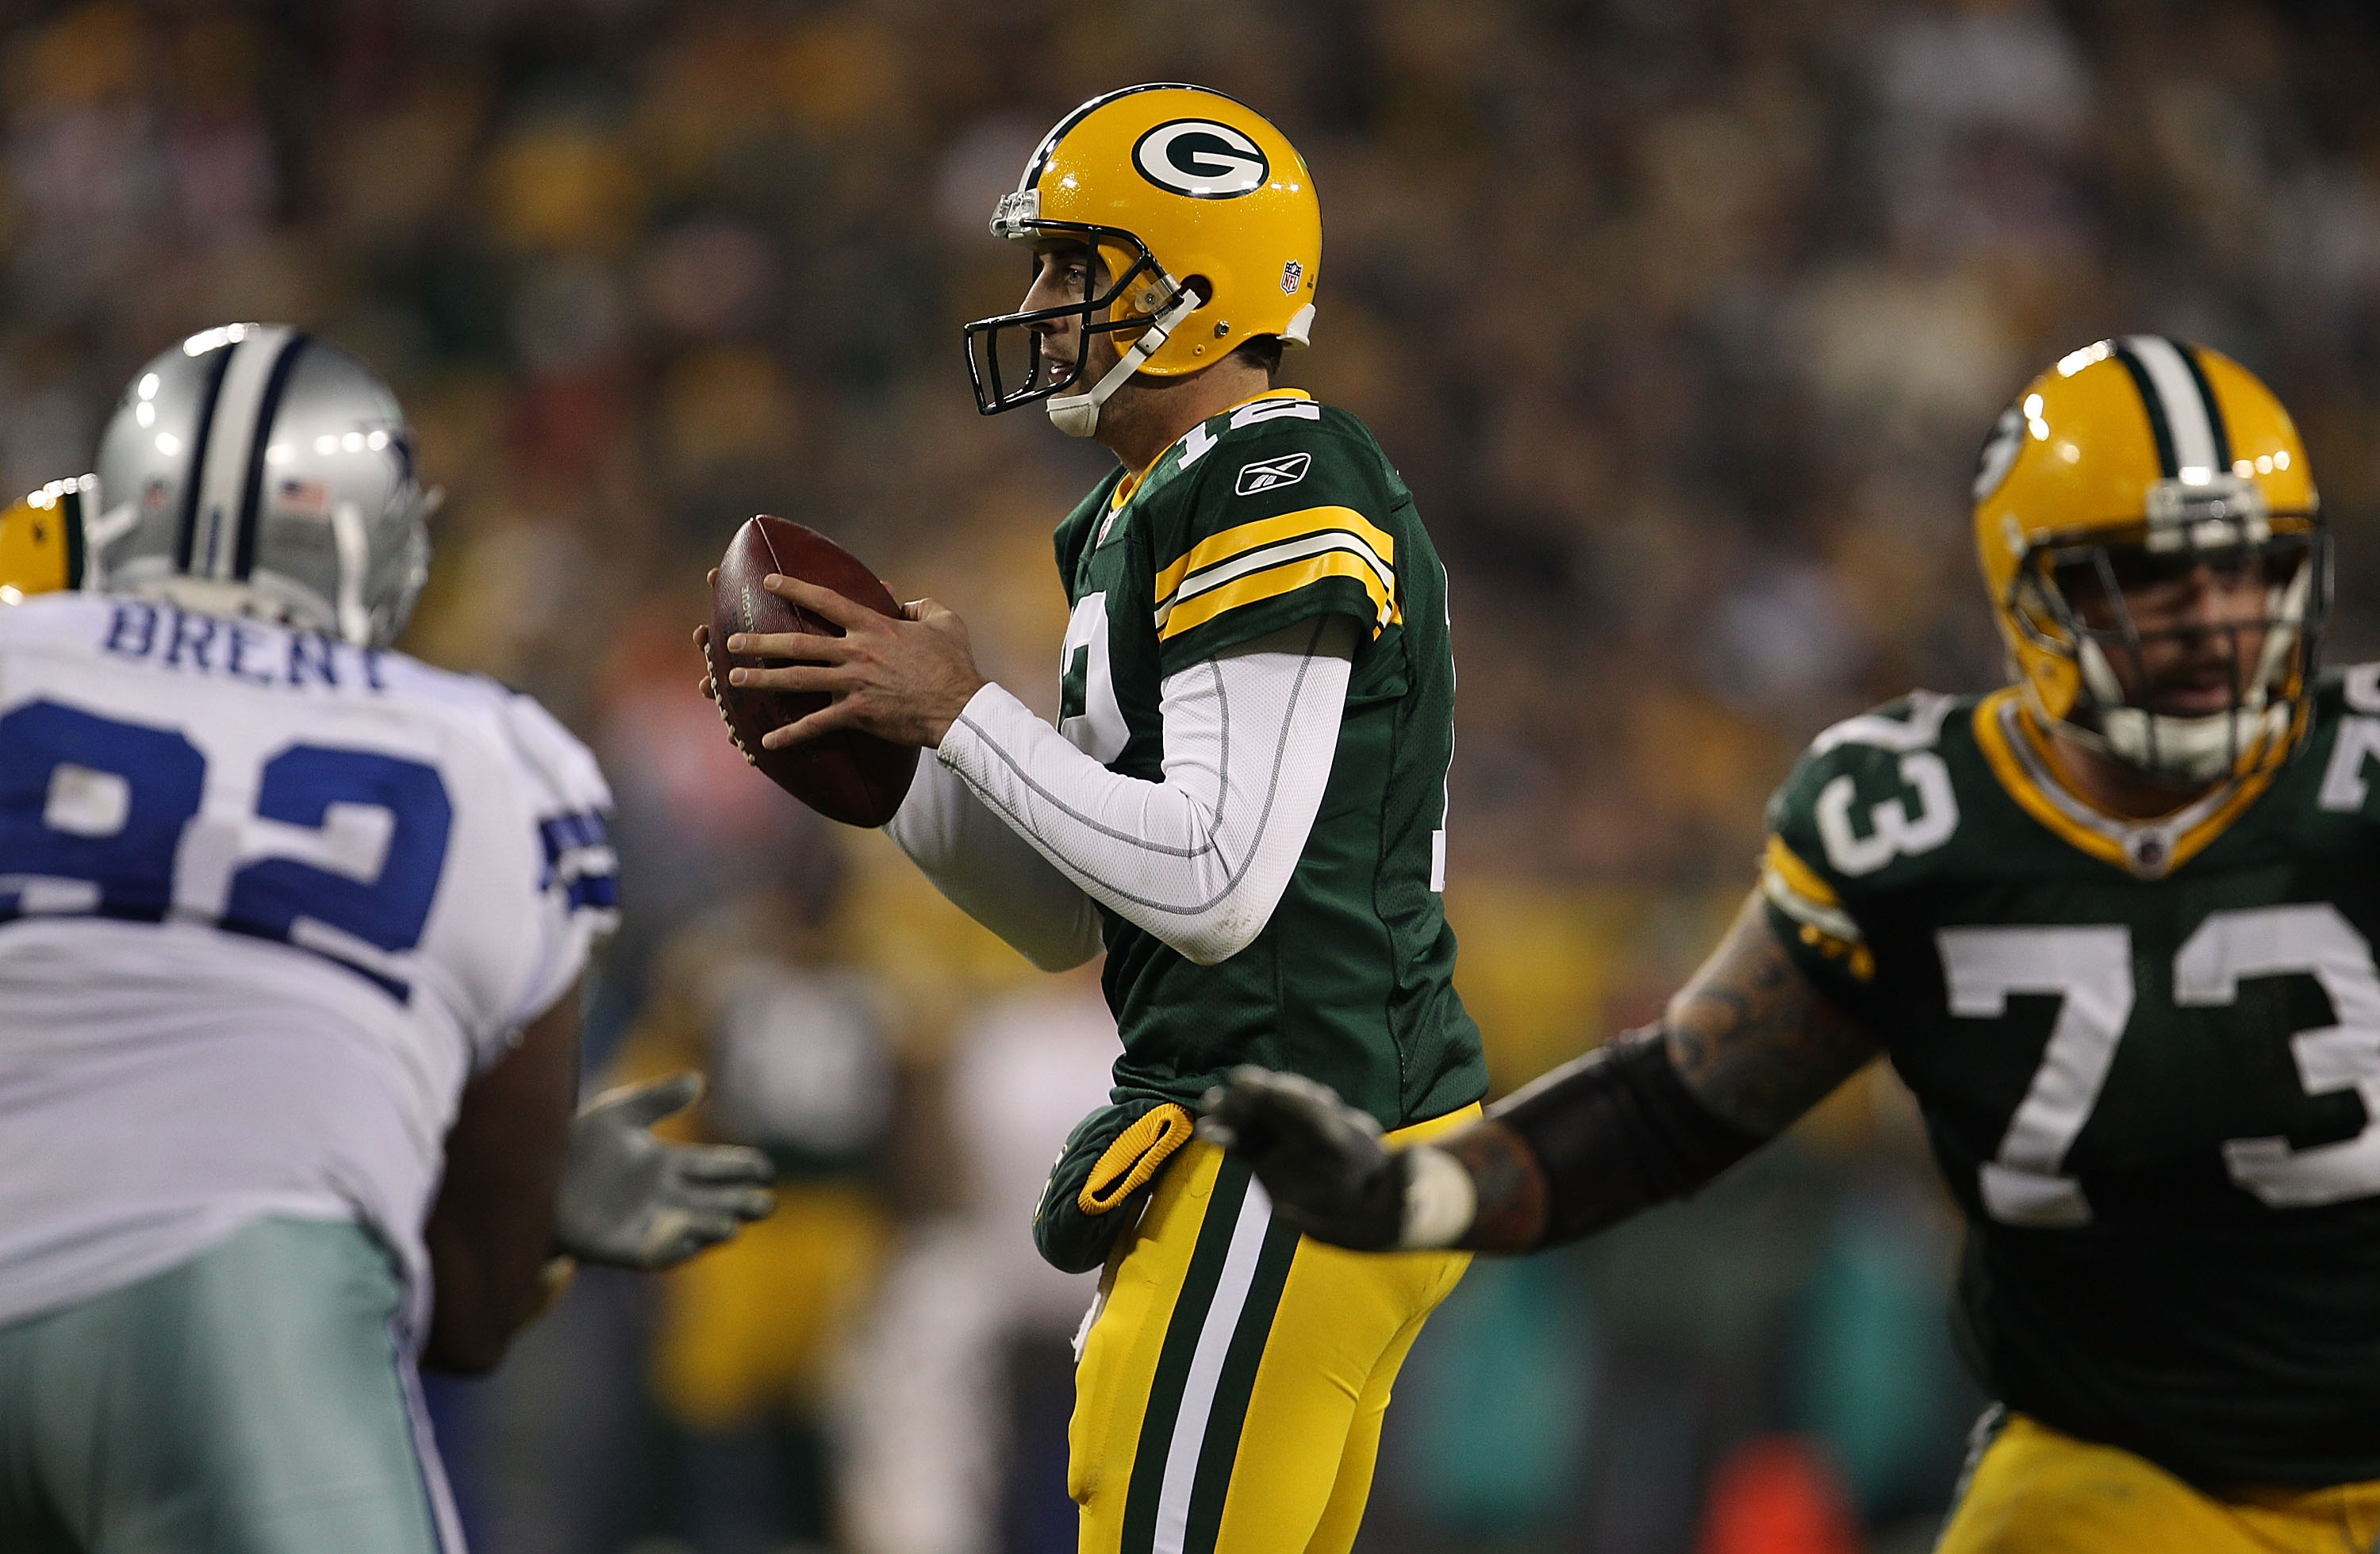 GREEN BAY, WI - NOVEMBER 07: Aaron Rodgers #12 of the Green Bay Packers takes the snap as teammate Daryn Colledge #73 looks to block and Josh Brent #92 of the Dallas Cowboys rushes at Lambeau Field on November 7, 2010 in Green Bay, Wisconsin. The Packers